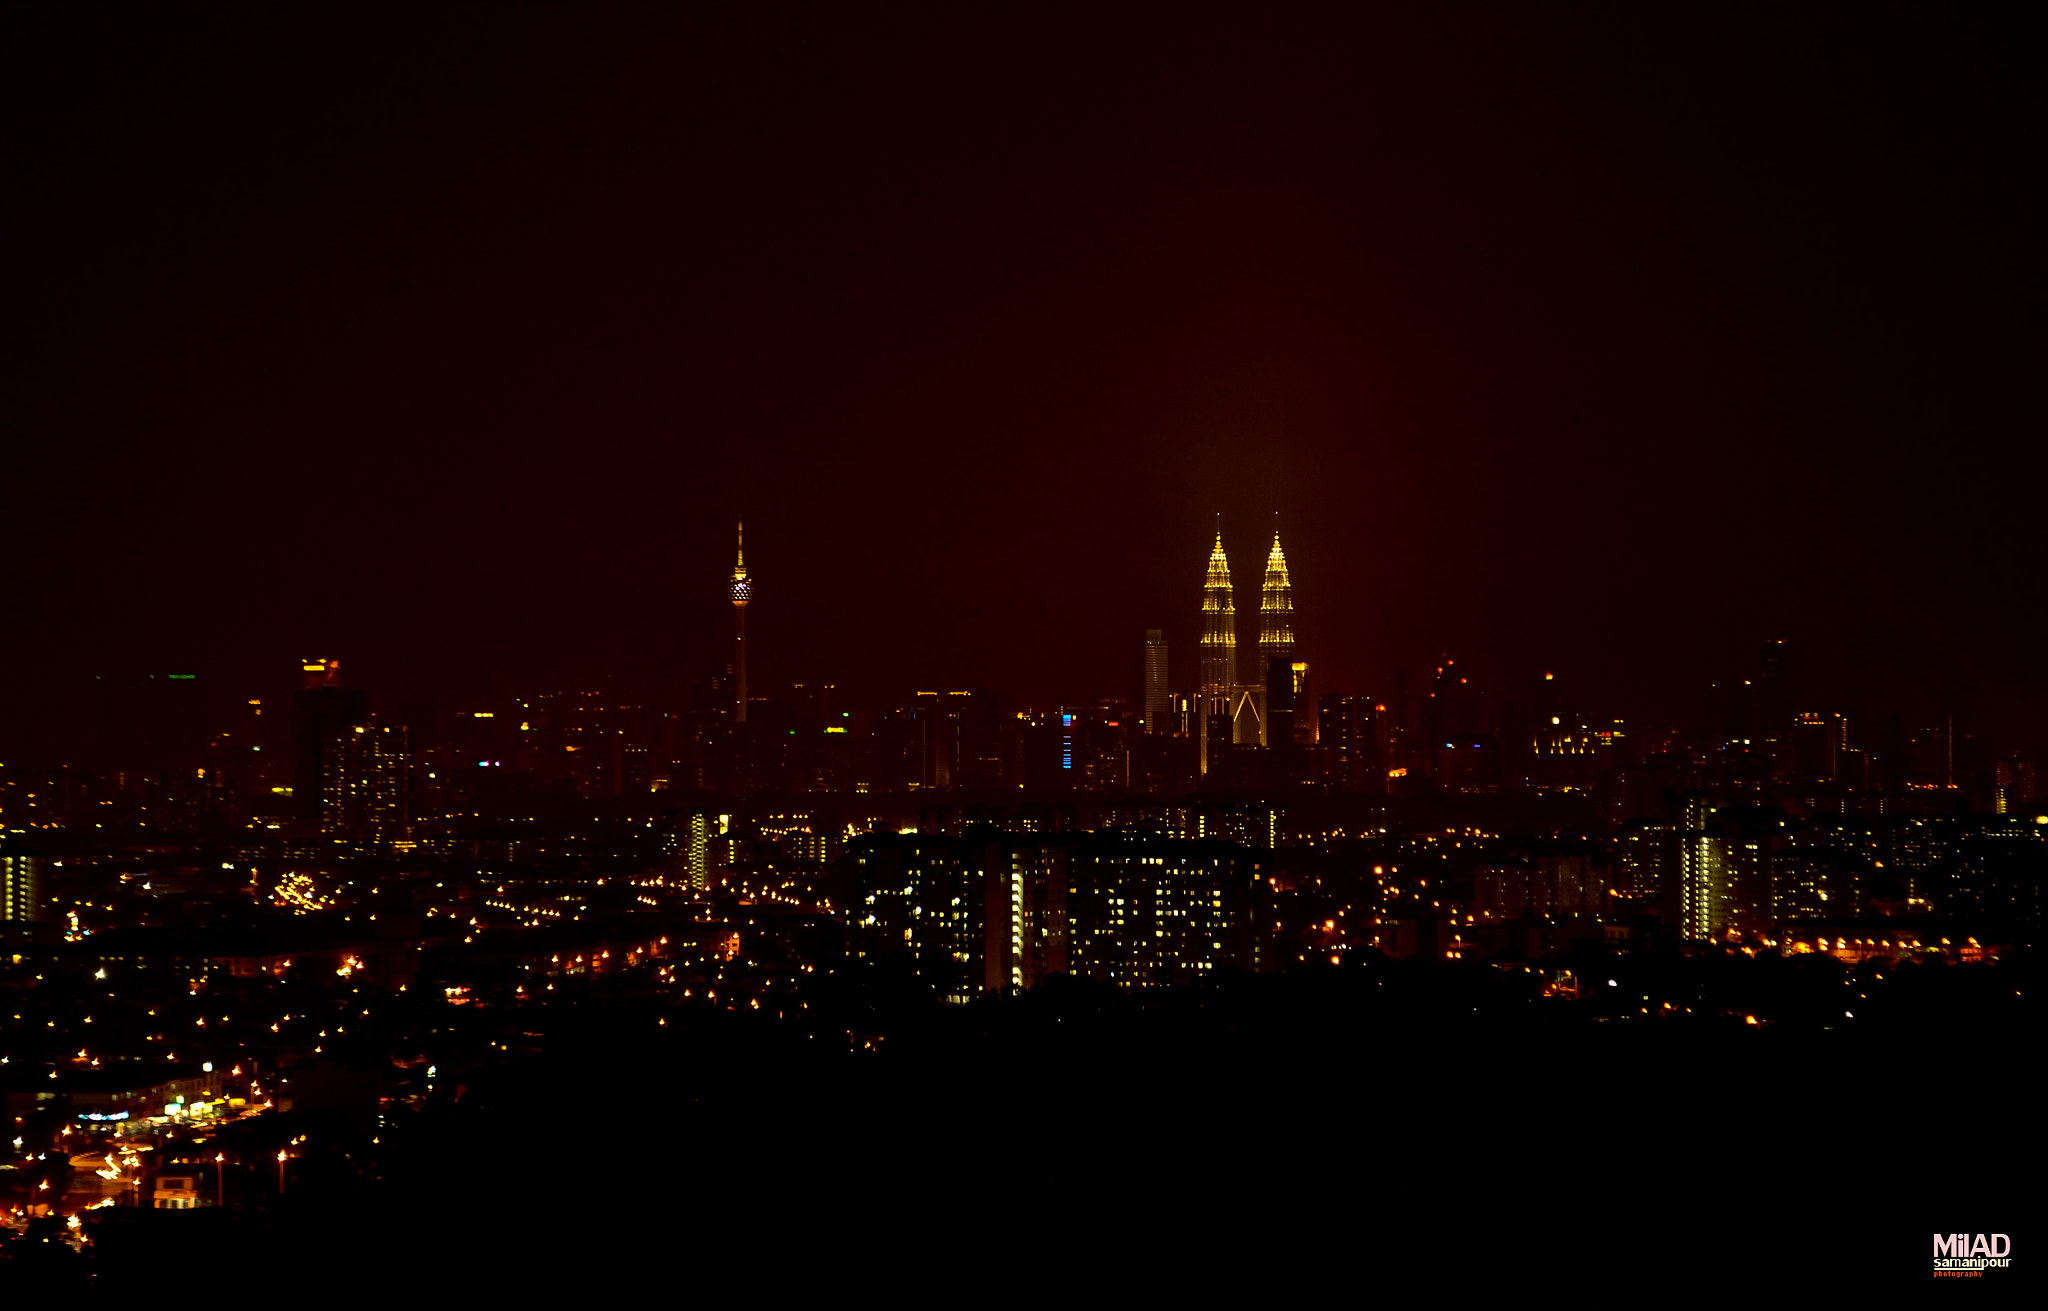 Photograph Look point-KL by Milad Samanipour on 500px